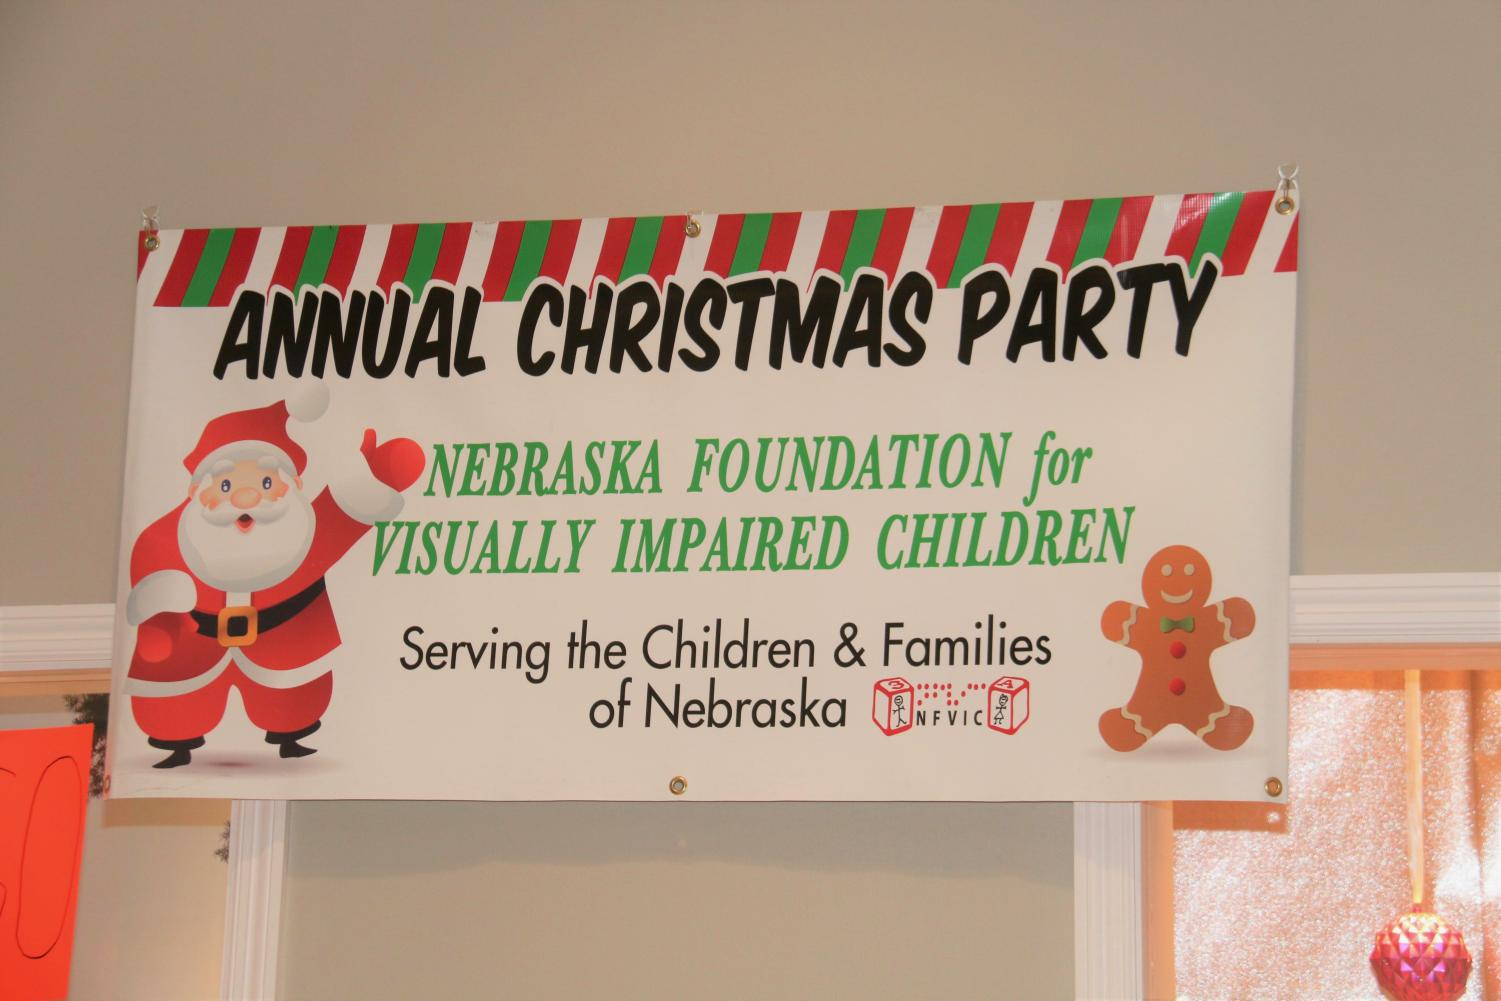 NFVIC hosted their annual Christmas party for visually impaired children at Westroads Mall, this Sunday, Dec. 8.